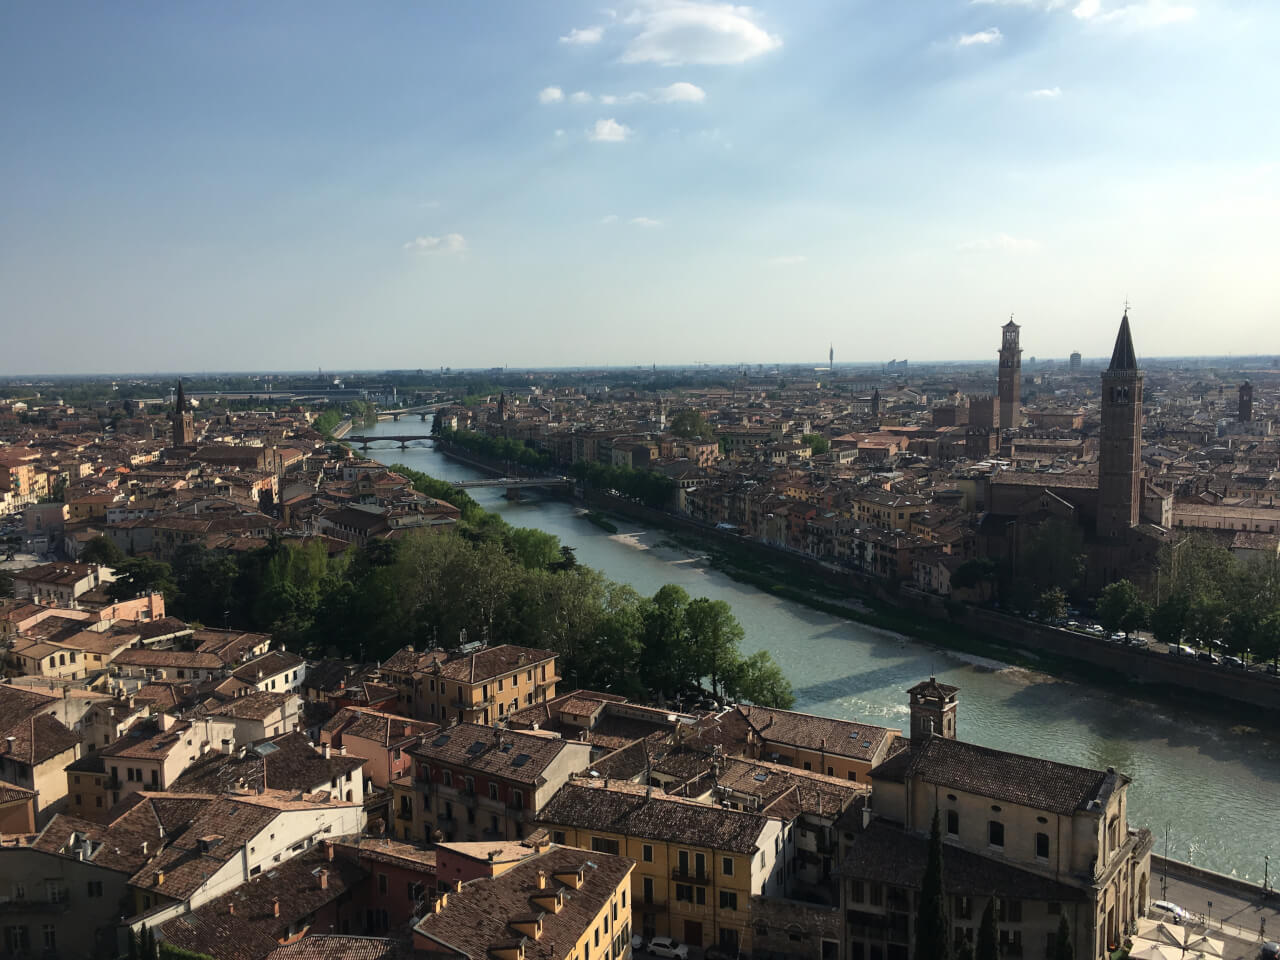 In fair Verona (& Padova) where we lay our scene: Travels in the Veneto